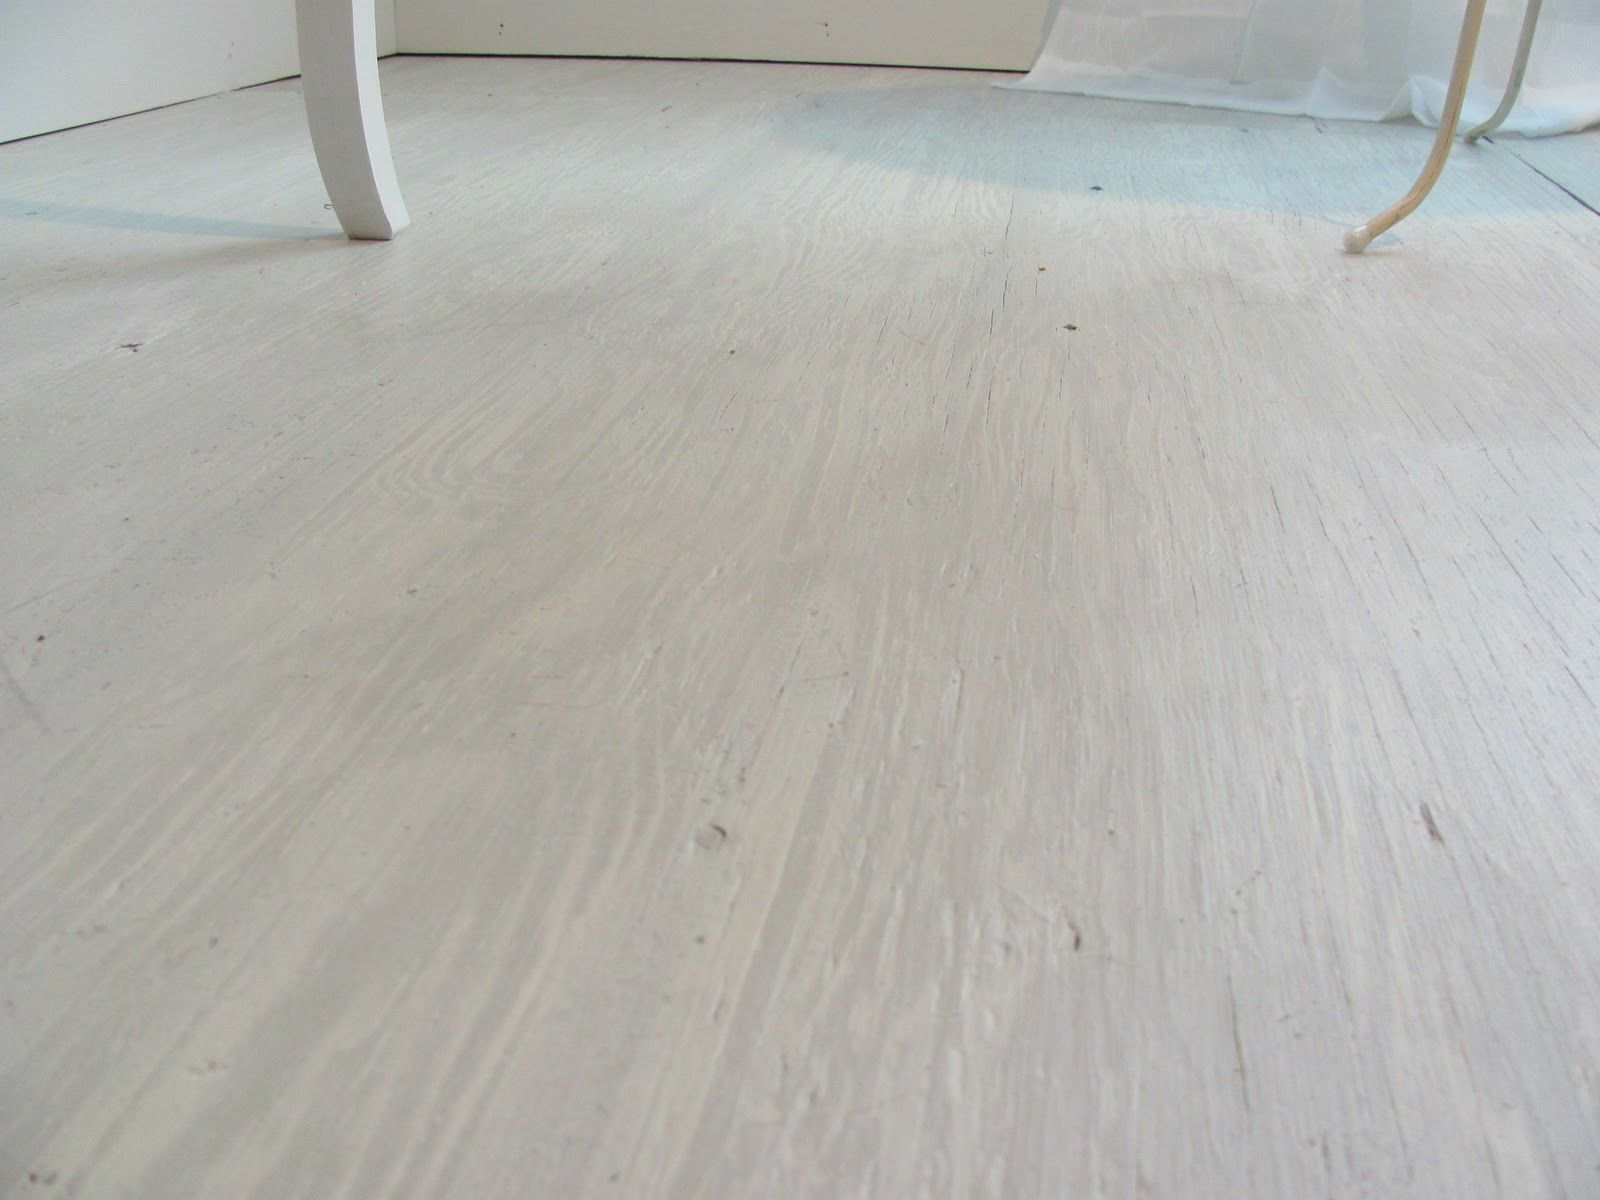 Whitewashed Plywood Floors Not Really But Thats What It Looks - Flooring that looks like wood but is not